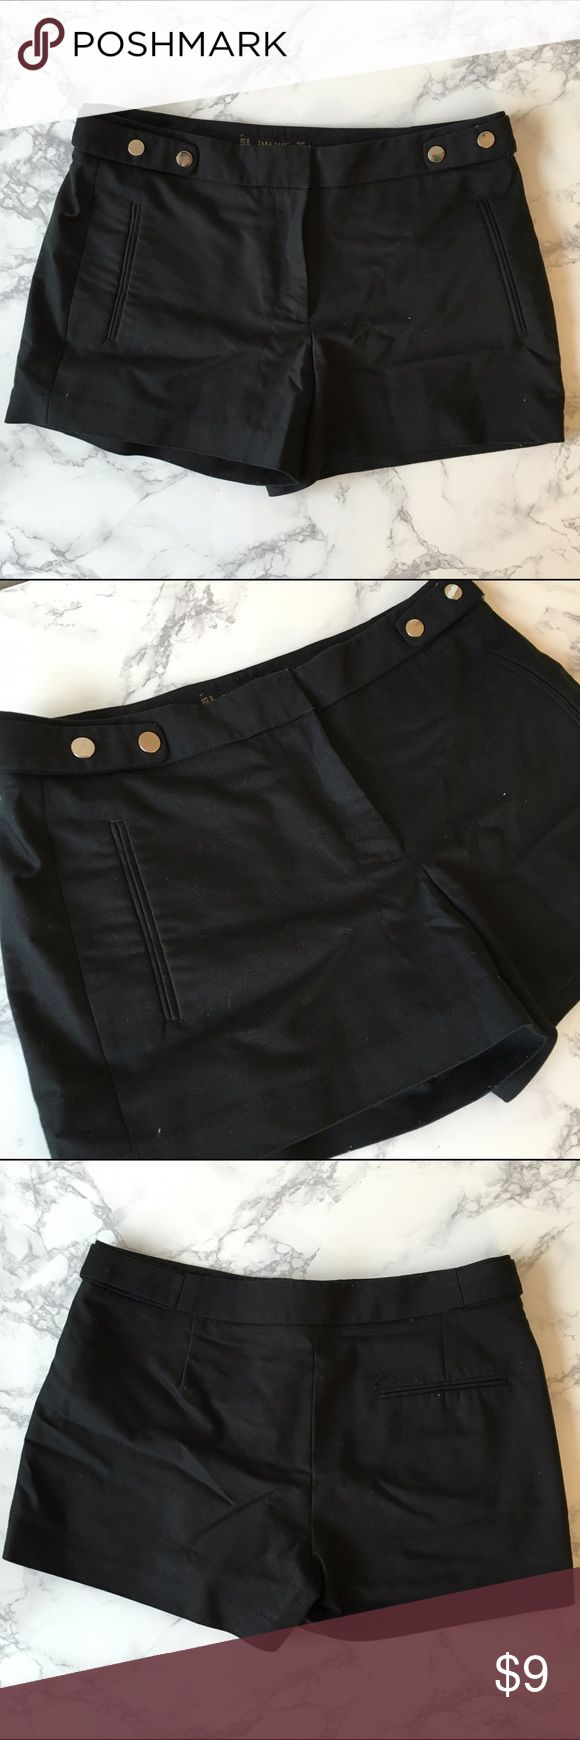 🎉Cyber Monday Sale🎉 Zara suit shorts Super cute suit shorts with a nice stud trim on the waist. Only worn a couple times. The sewing has come undone on the inside of one of the legs, but it's unnoticeable when you wear it. Zara Shorts